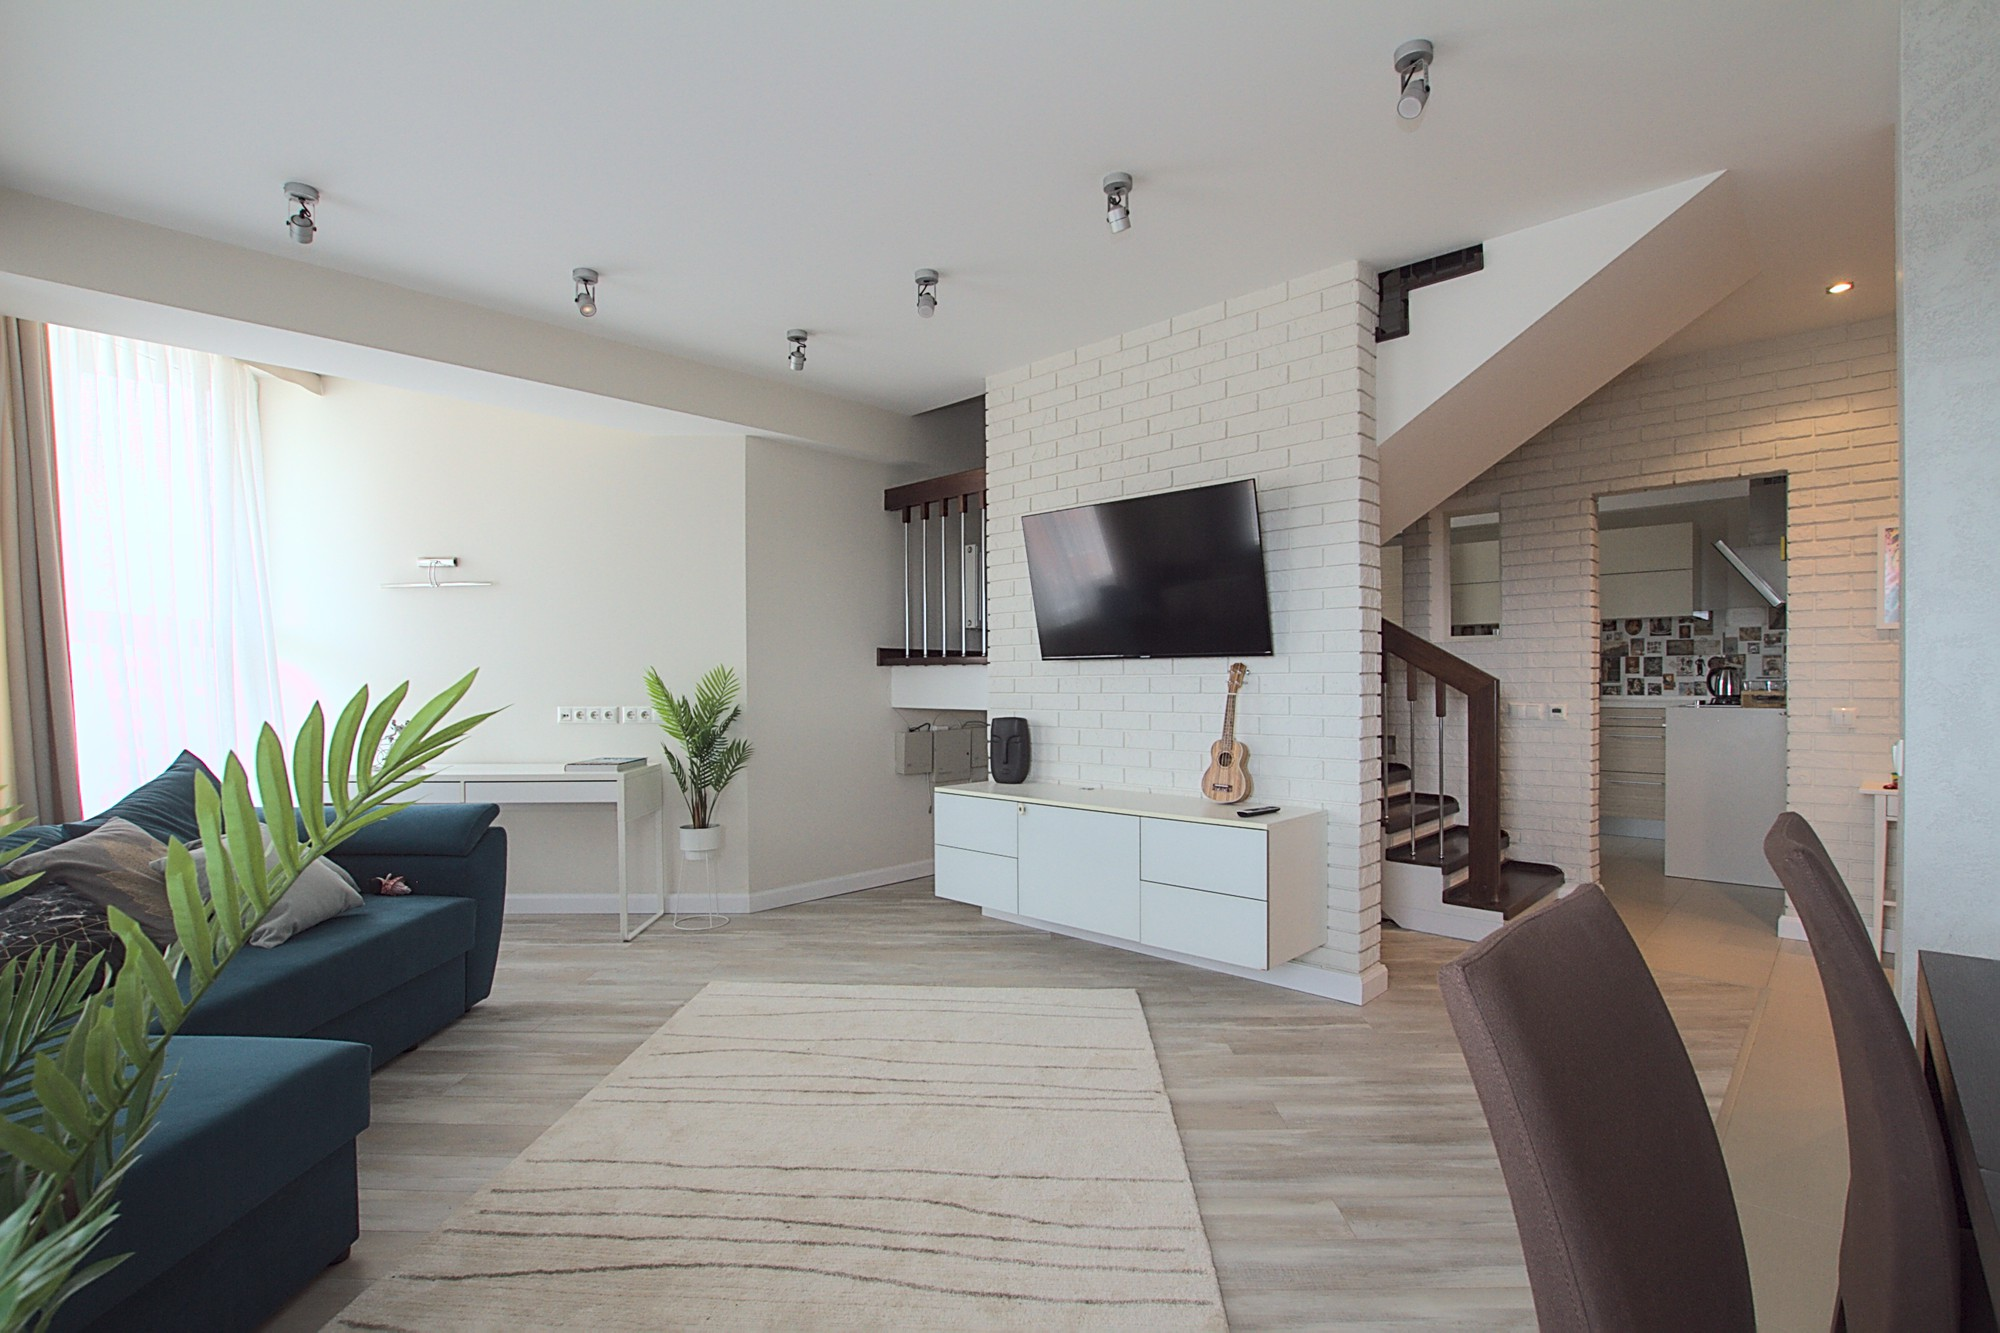 Penthouse apartment for rent in Chisinau: 3 rooms, 2 bedrooms, 130 m²